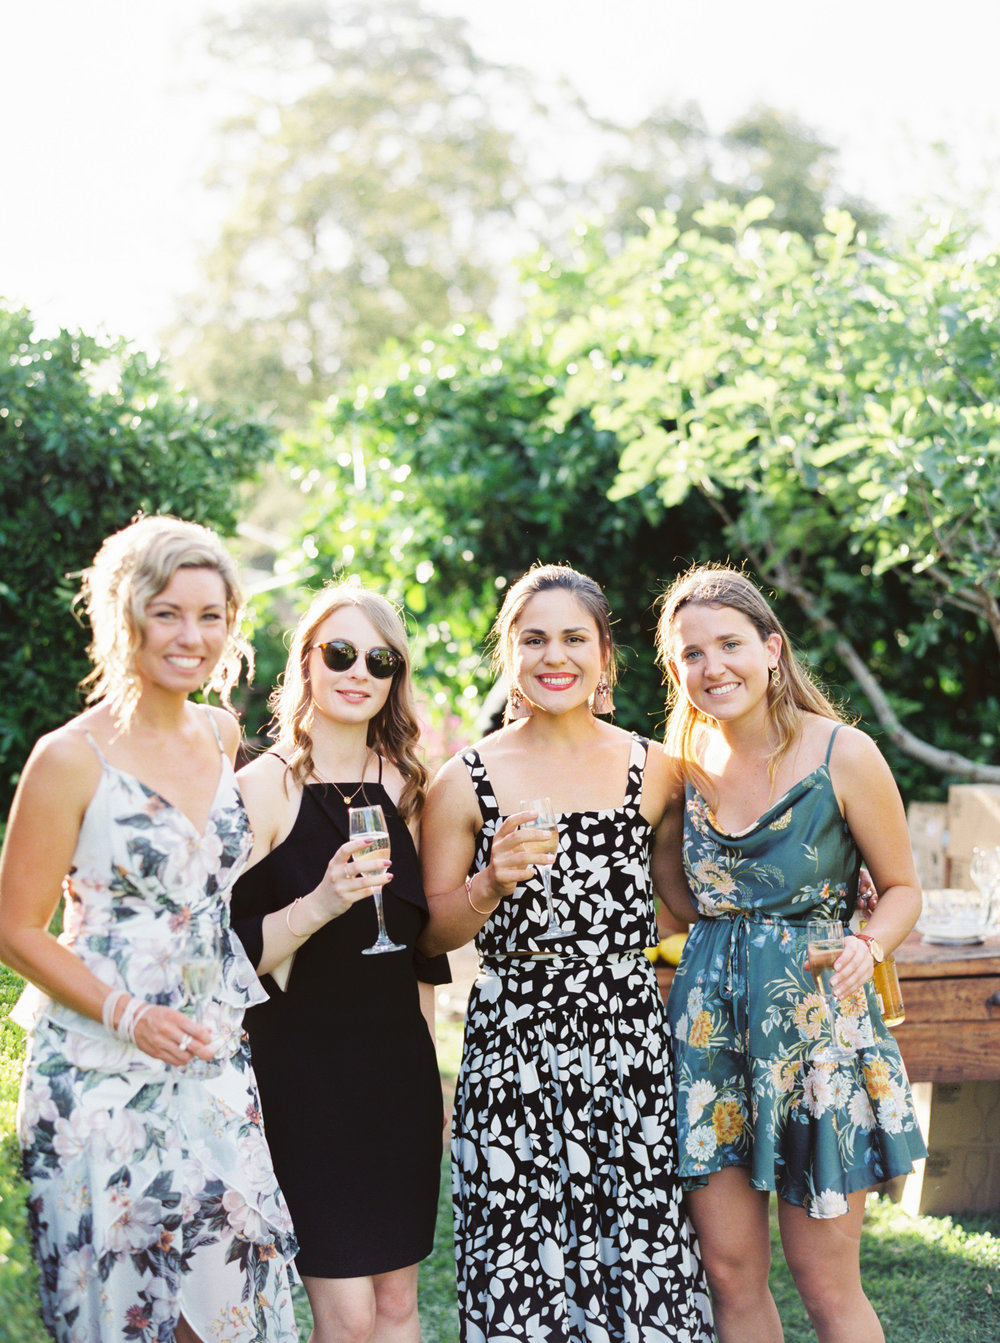 00081- Olive Tree Mediterranean Wedding in Mudgee NSW Australia Fine Art Film Wedding Lifestyle Photographer Sheri McMahon_.jpg